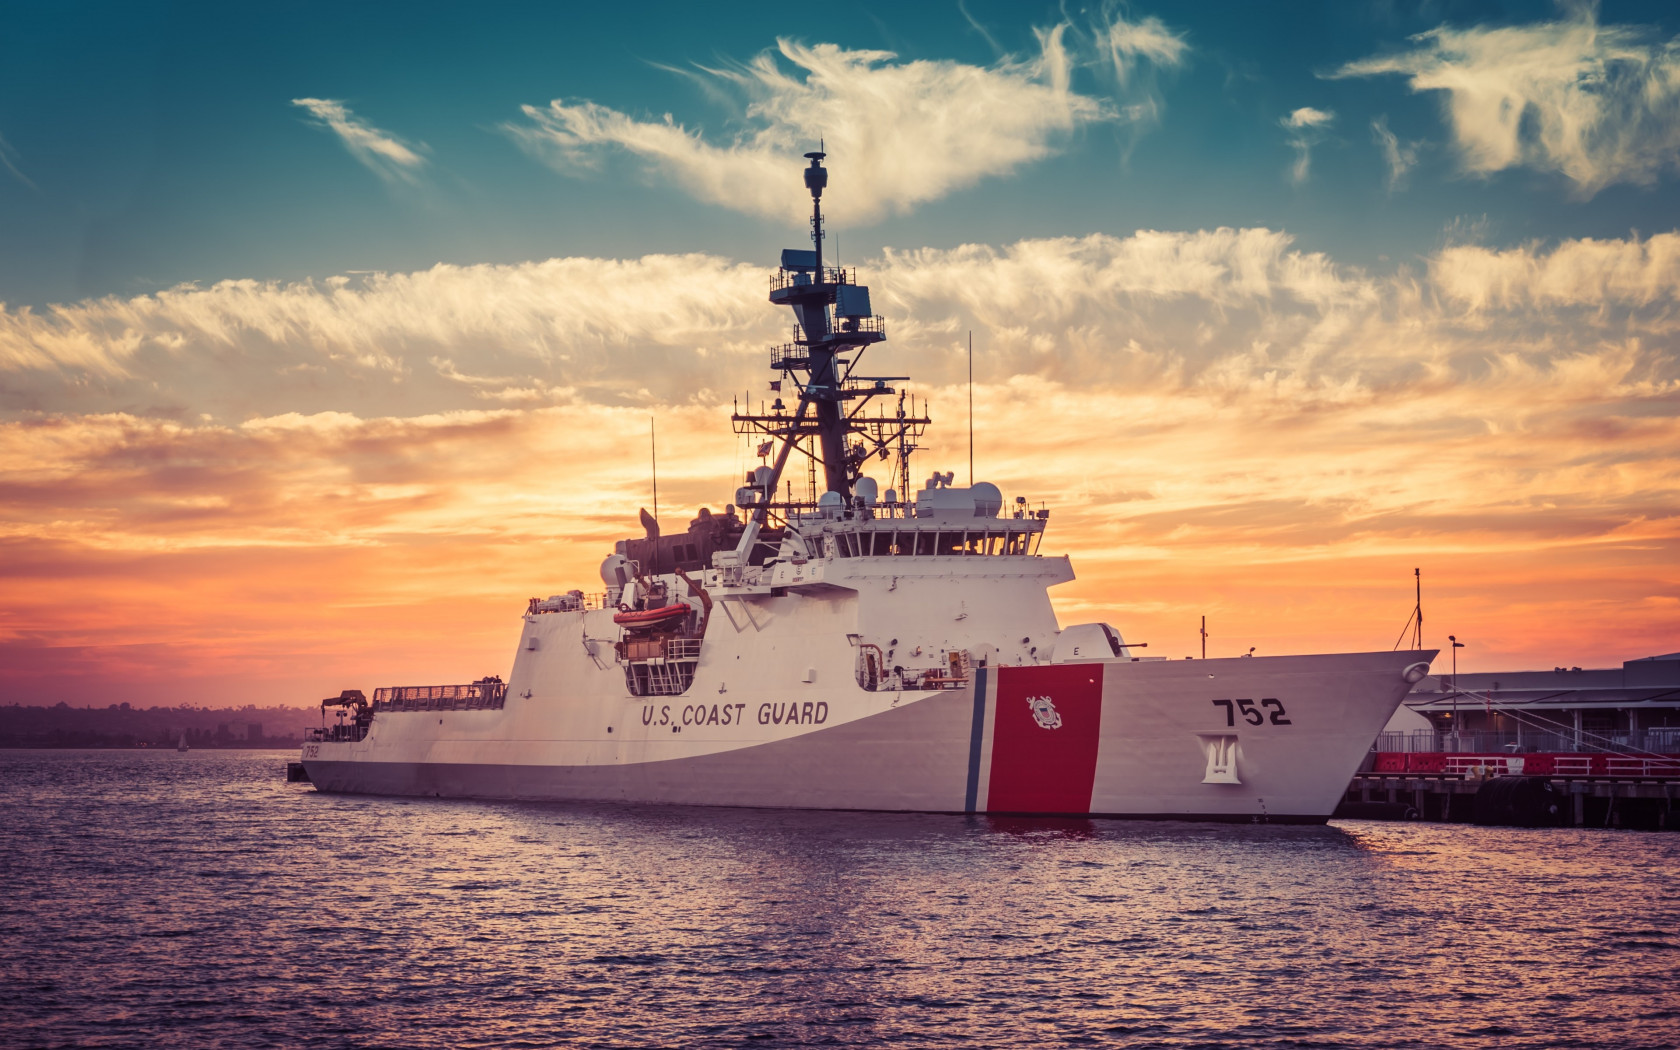 Coast Guard Cutter Stratton wallpaper 1680x1050